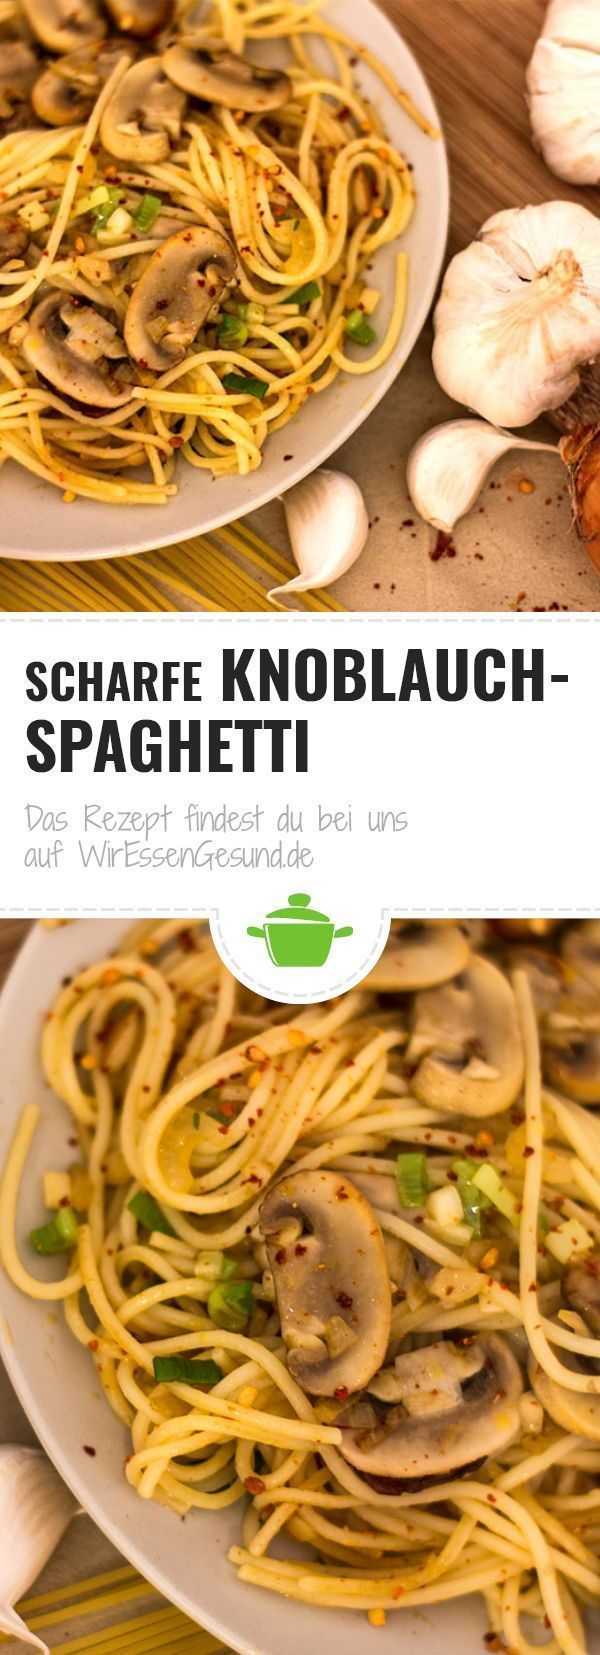 Spicy Garlic Spaghetti - WirEssenGesund -  It does not always have to be spaghetti blognese or carb